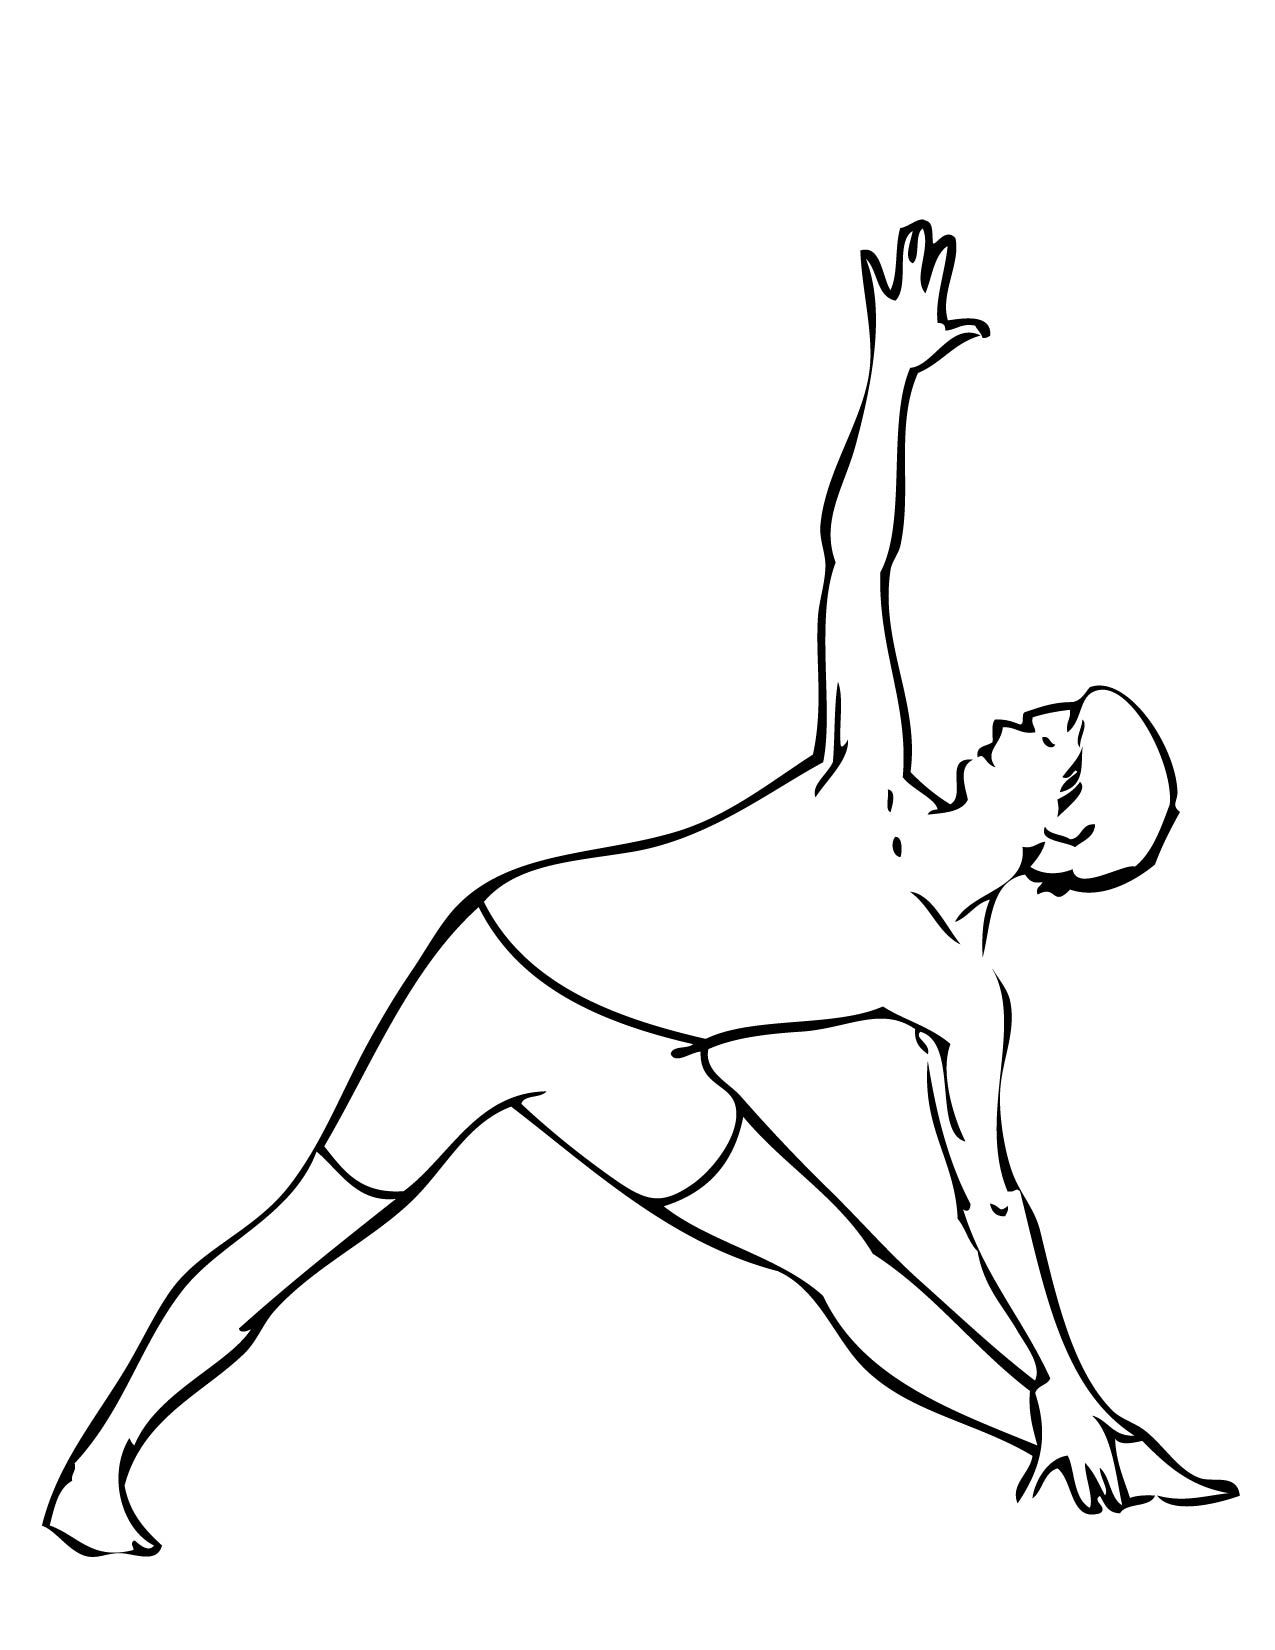 Kids Yoga Coloring Pages this